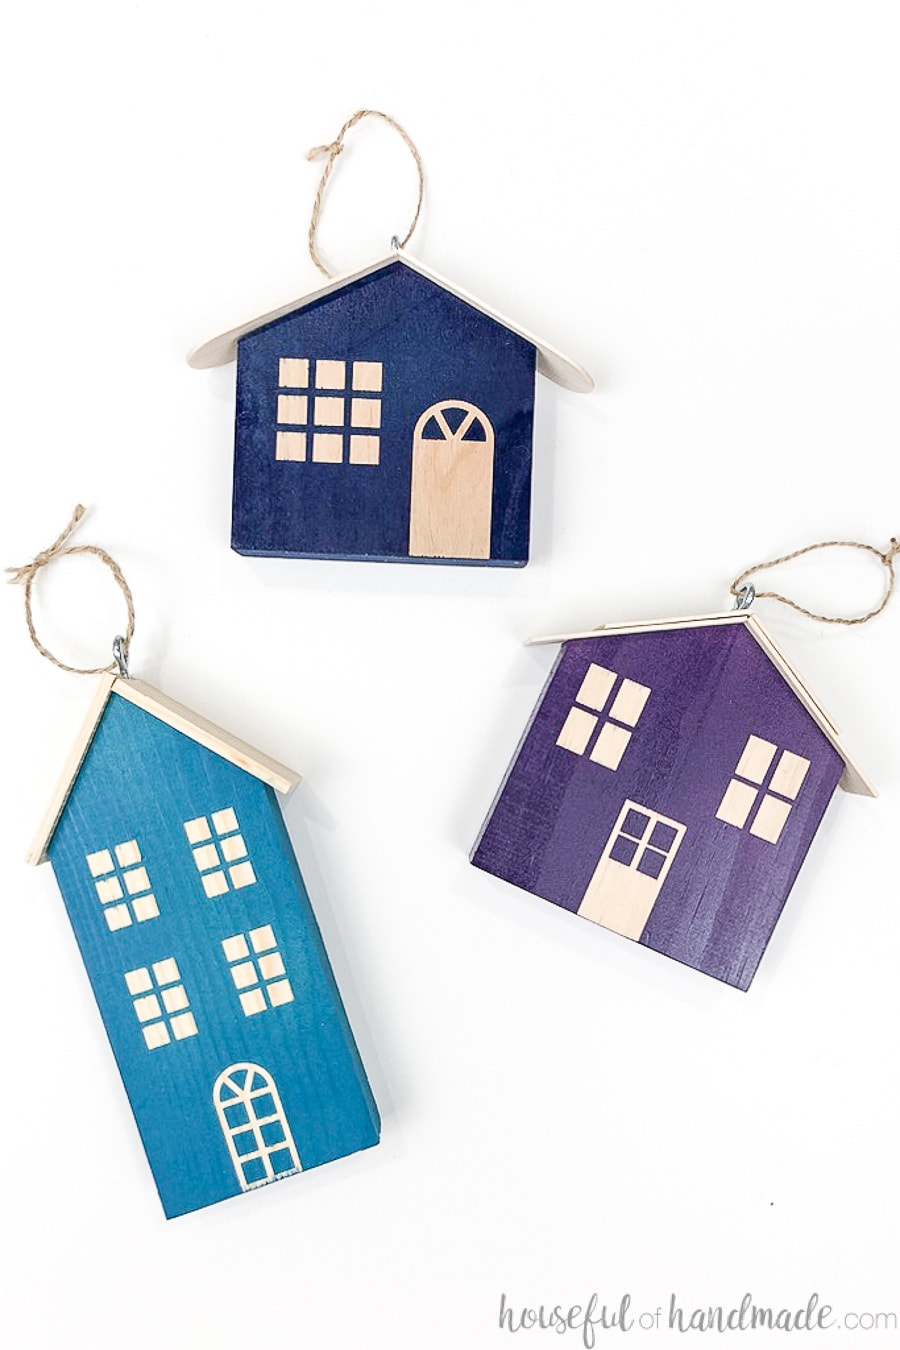 Three wood Christmas houses with eye hooks on the top to hang as ornaments, one turquoise, one navy and one purple, laying on a white background.